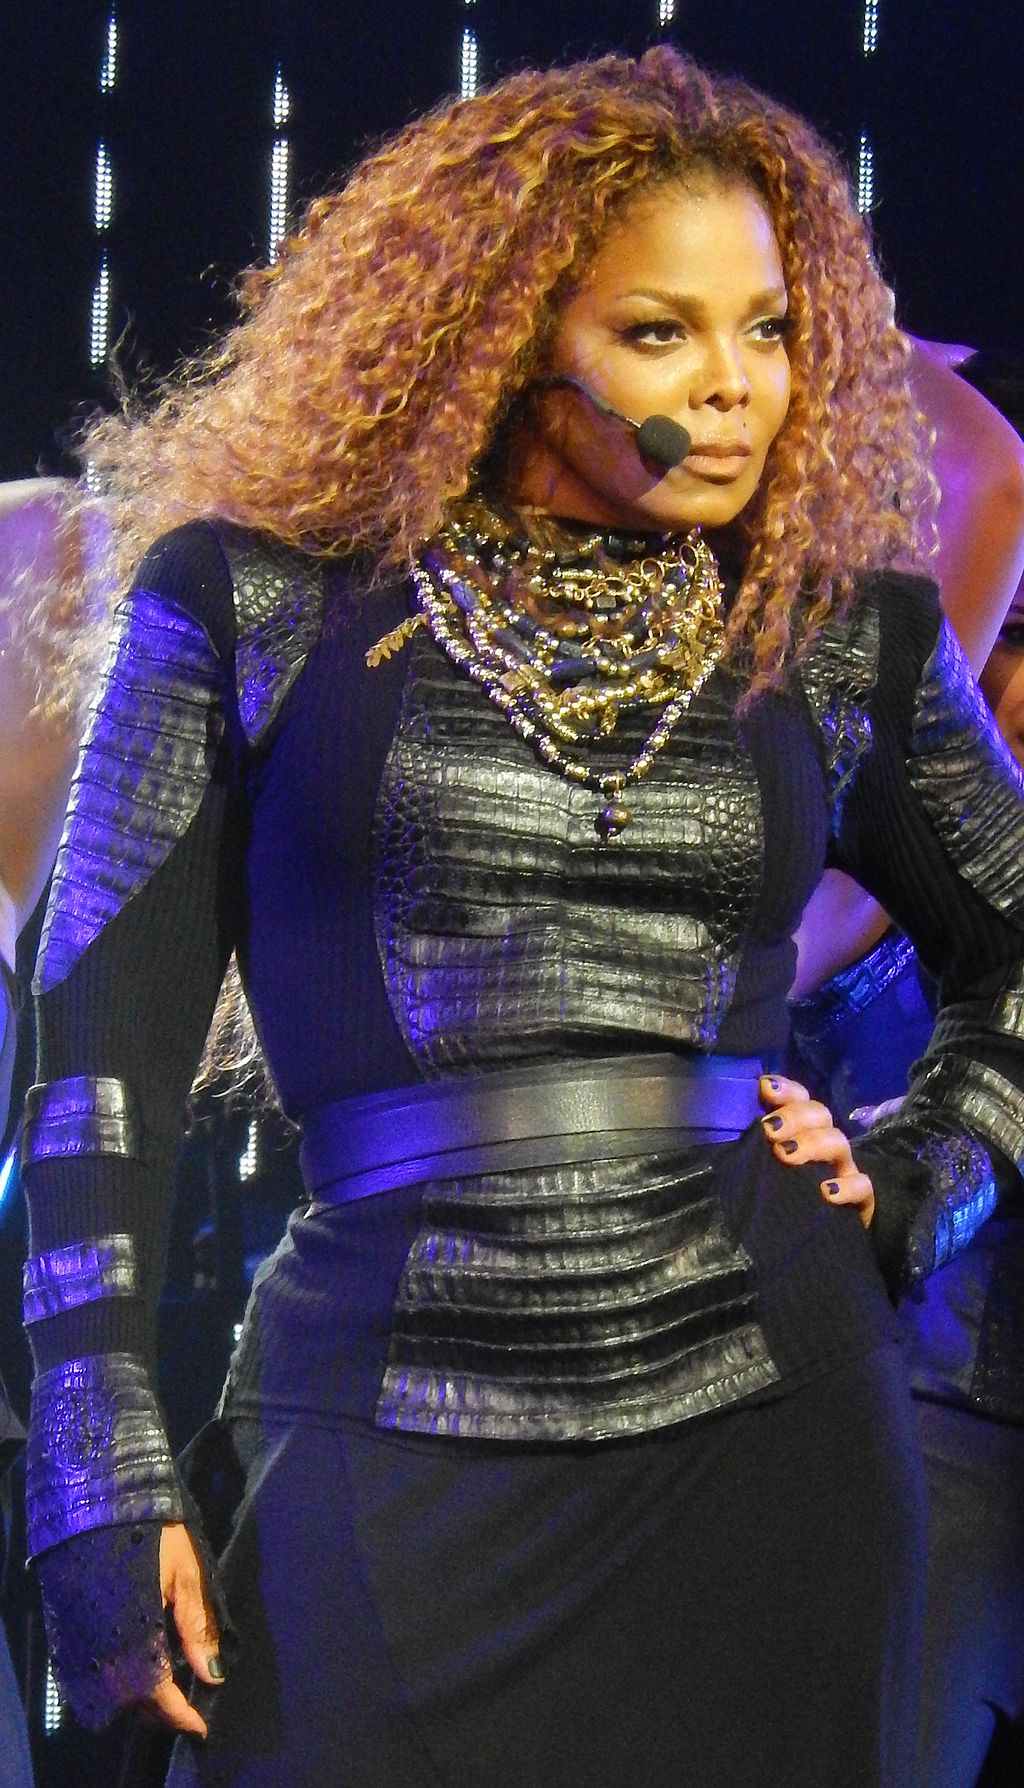 Janet Jackson on her Unbreakable World Tour, Bill Graham Civic Auditorium, San Francisco, California, October 14, 2015